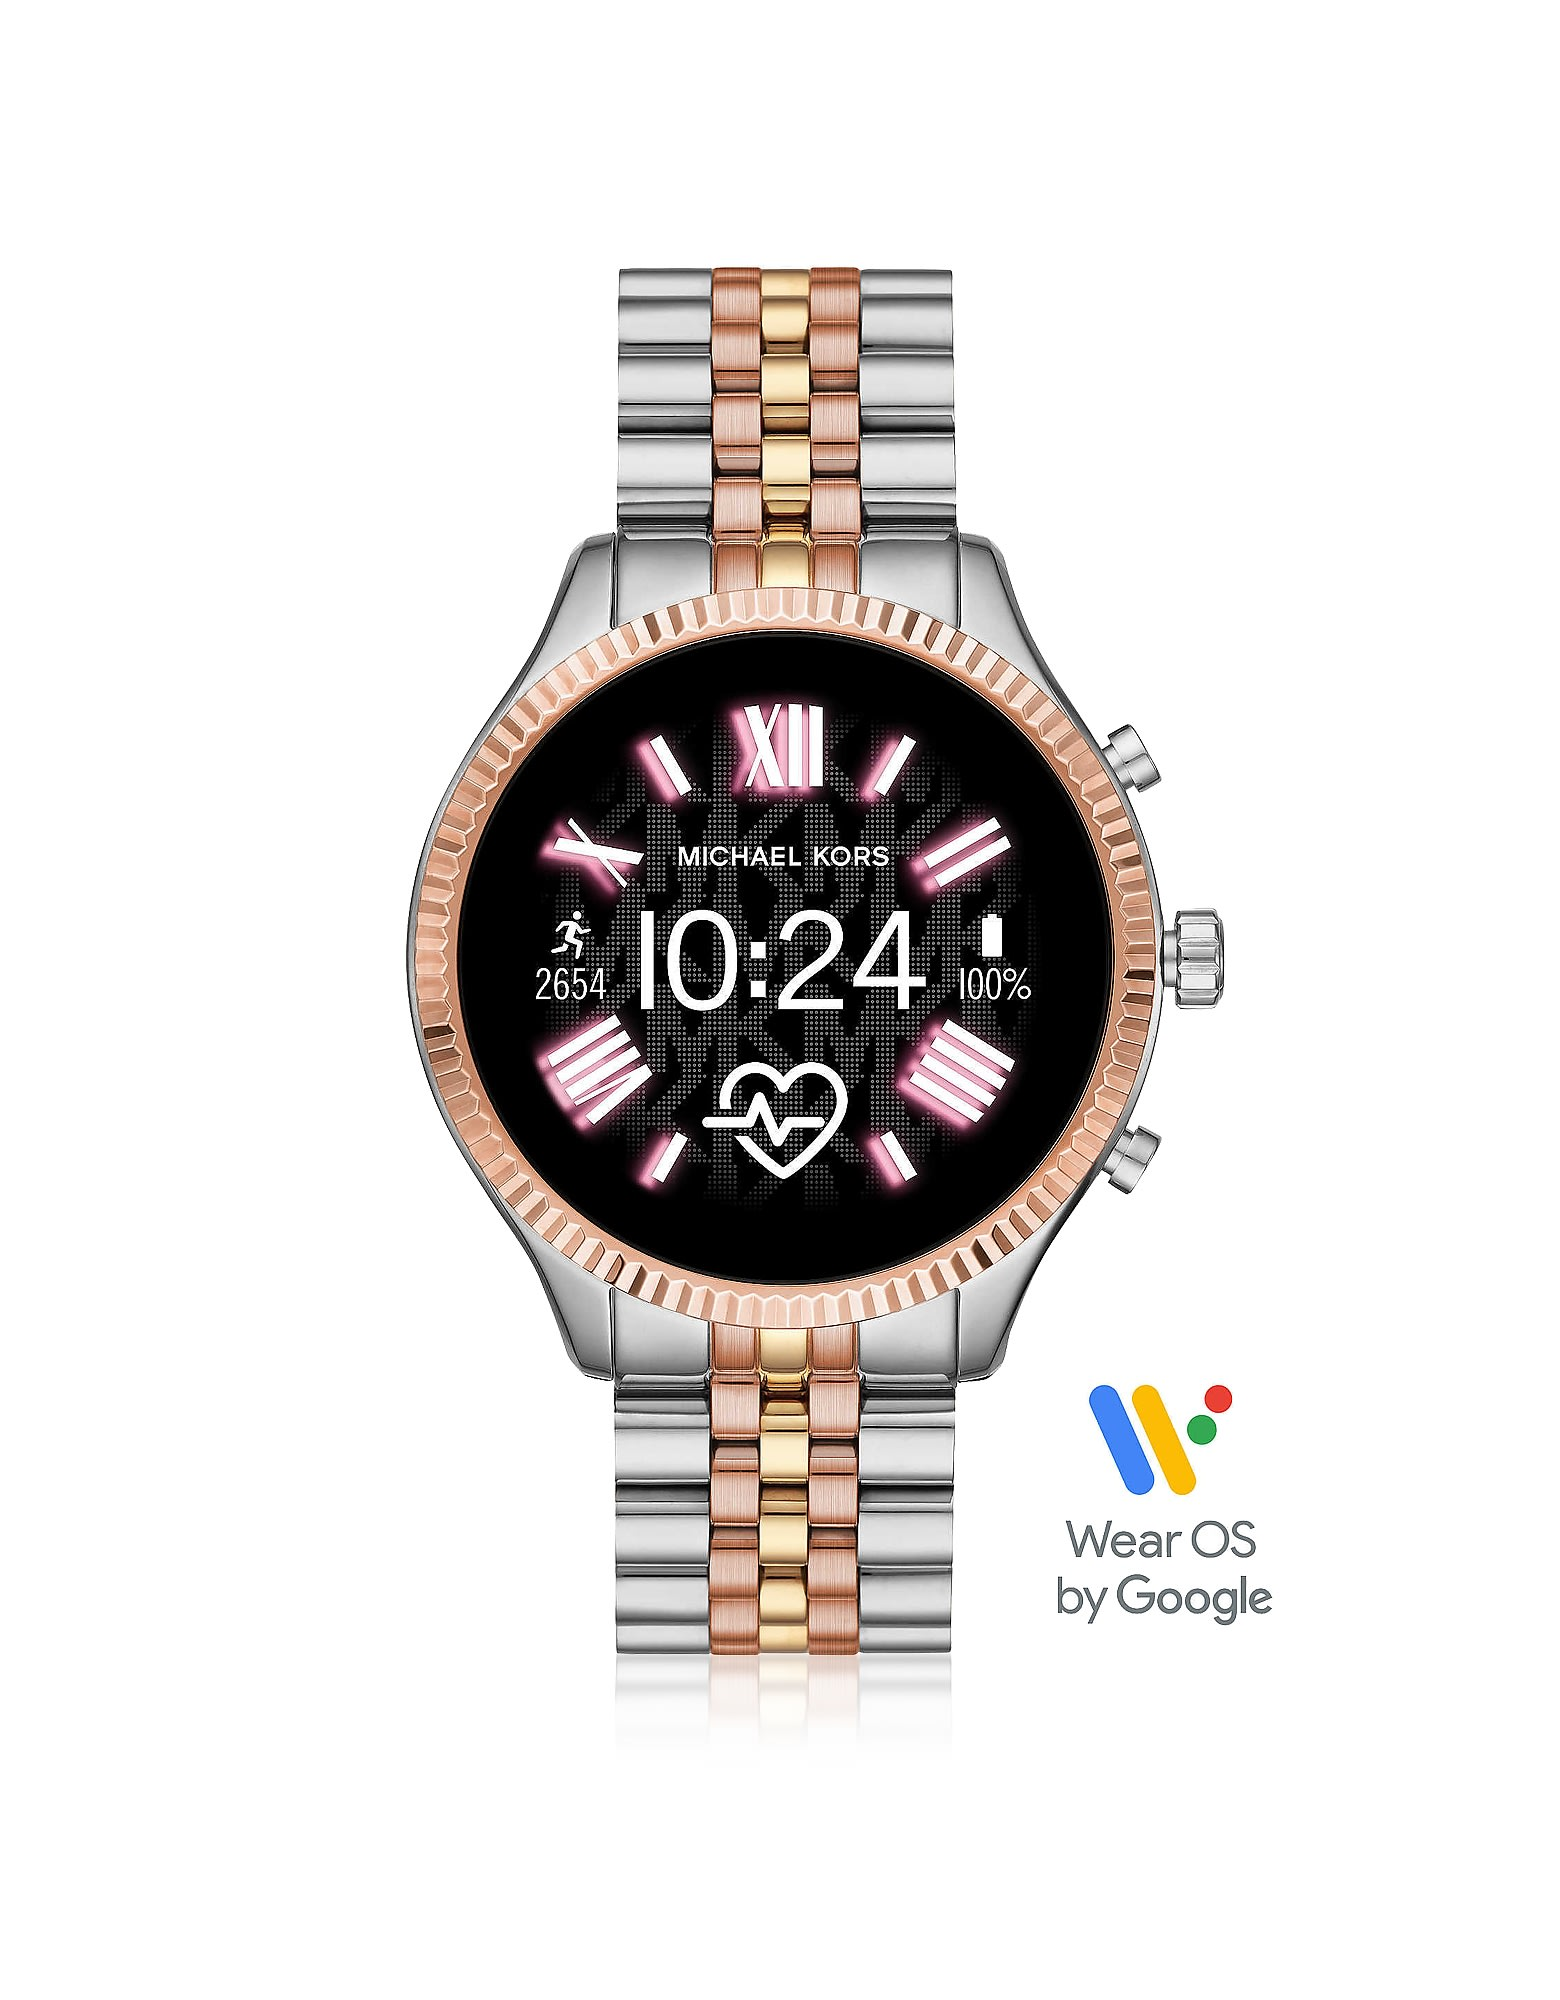 Michael Kors Watches TRI-TONE STAINLESS STEEL LEXINGTON 2.0 WOMENS DISPLAY WATCH